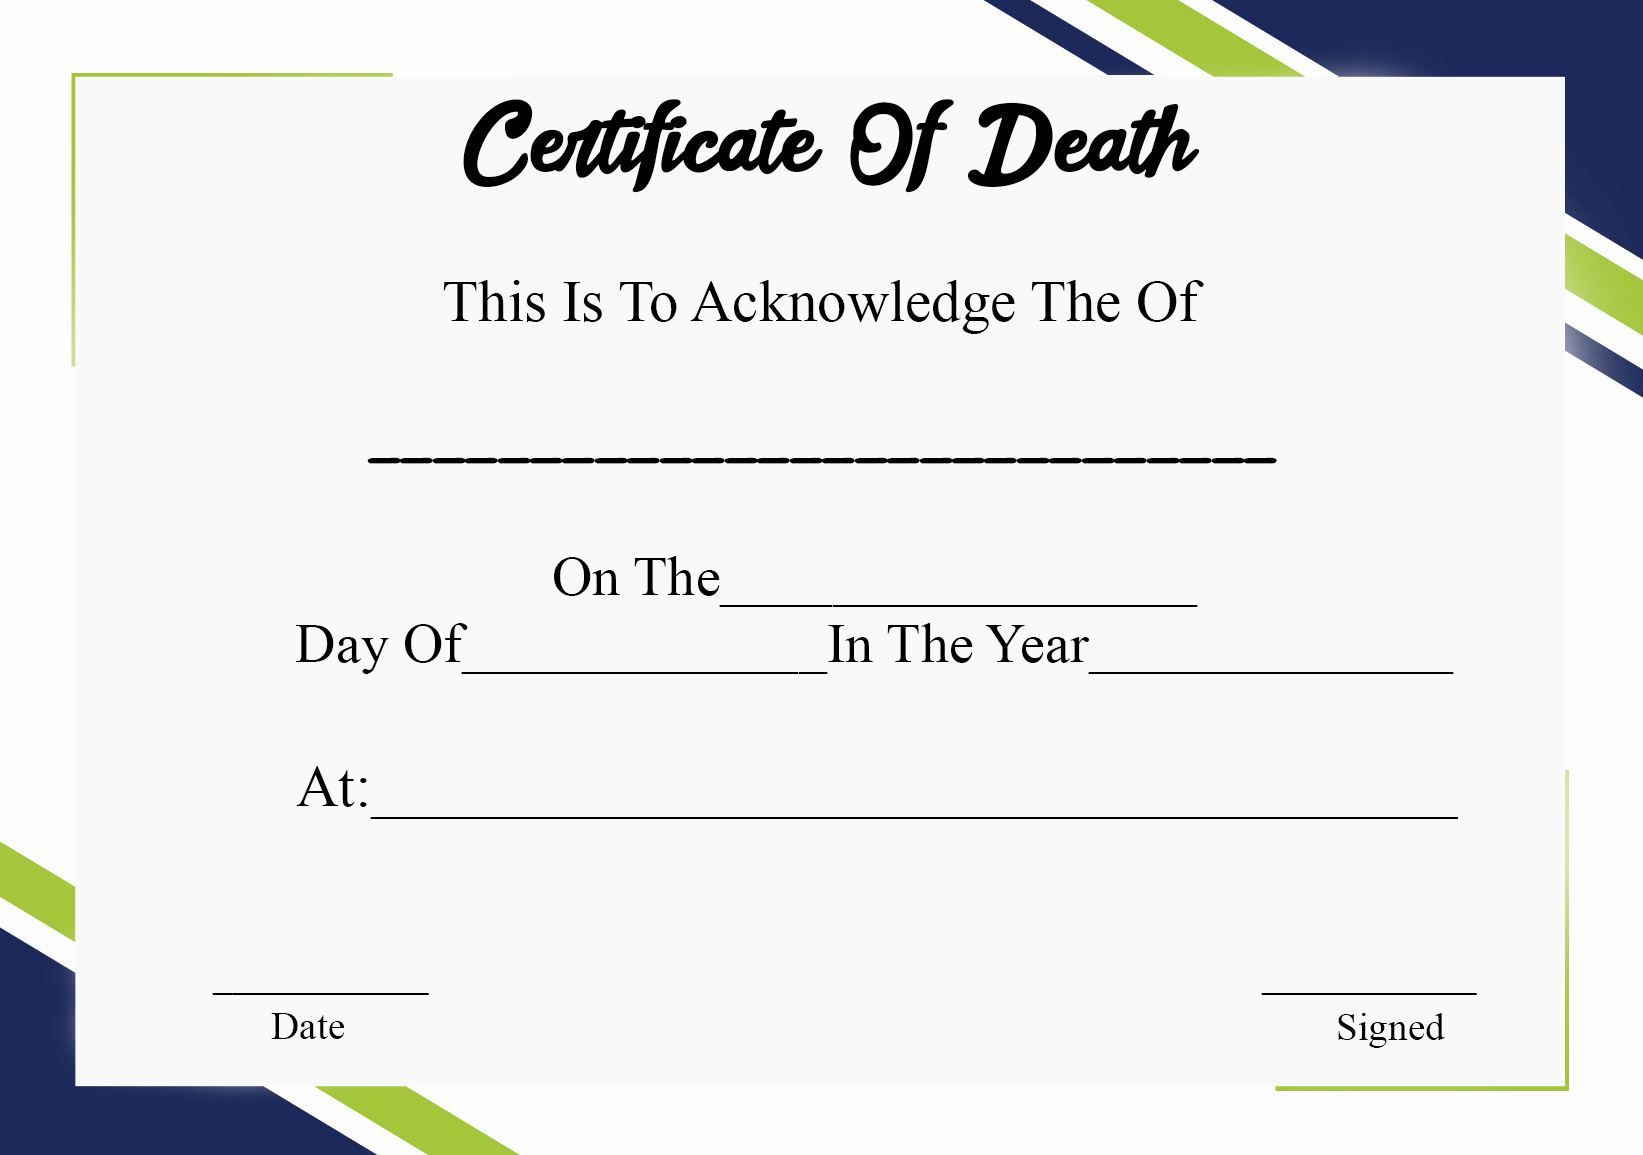 Blank Death Certificate Template Beautiful 5 Printable Certificate Death Templates with Samples